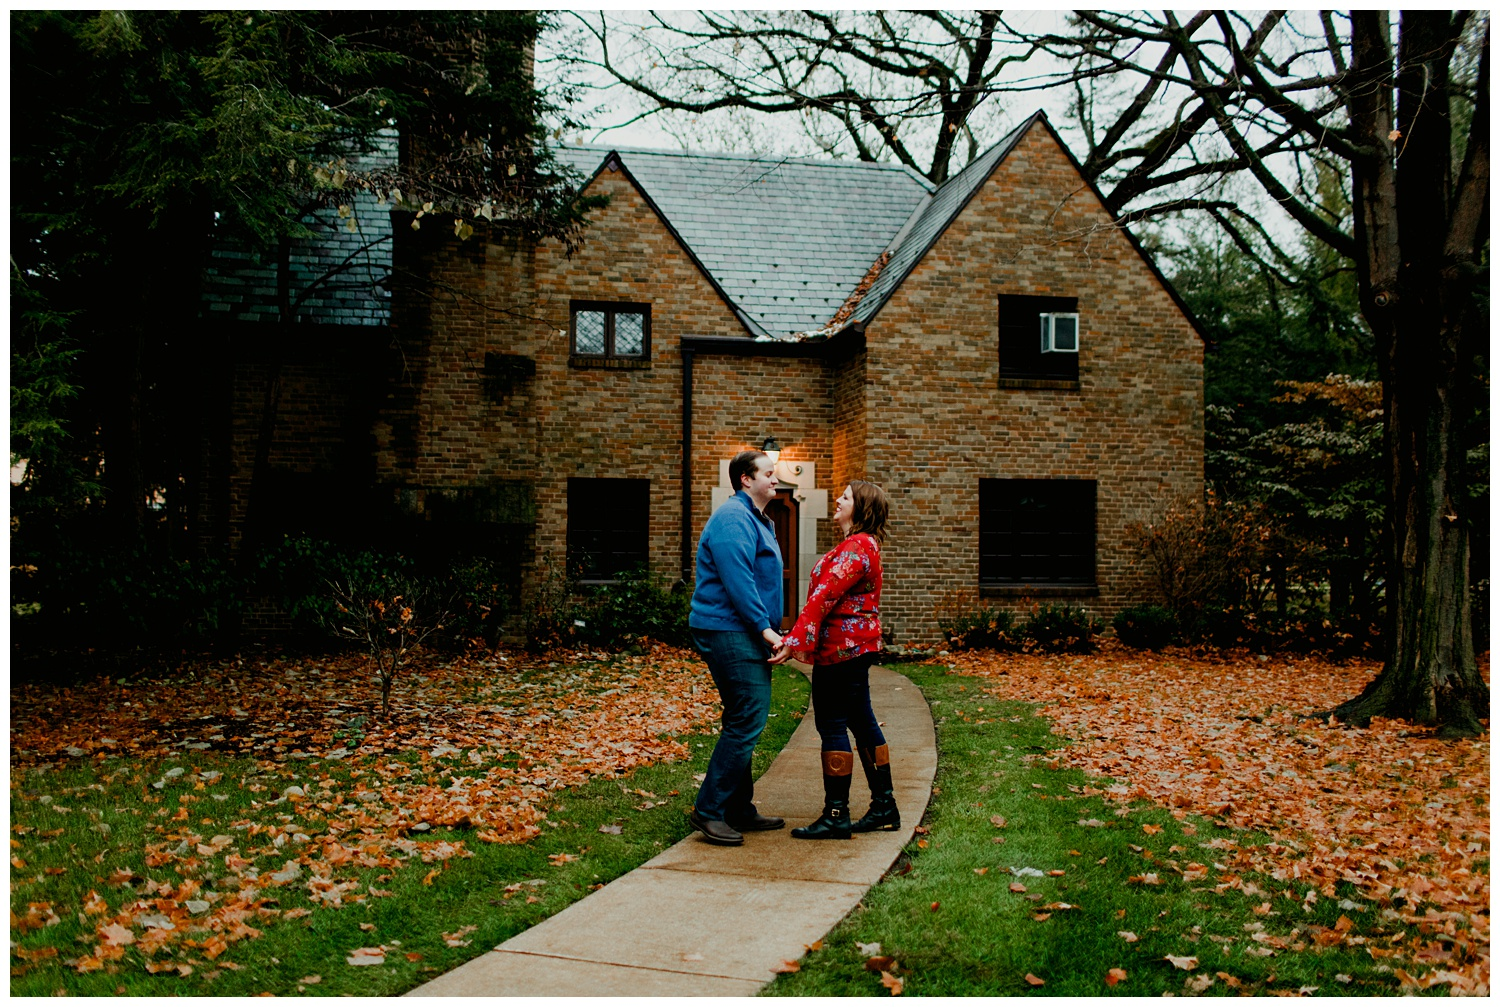 Saint mary's college campus wedding photographer southbend mishawaka granger1.jpg